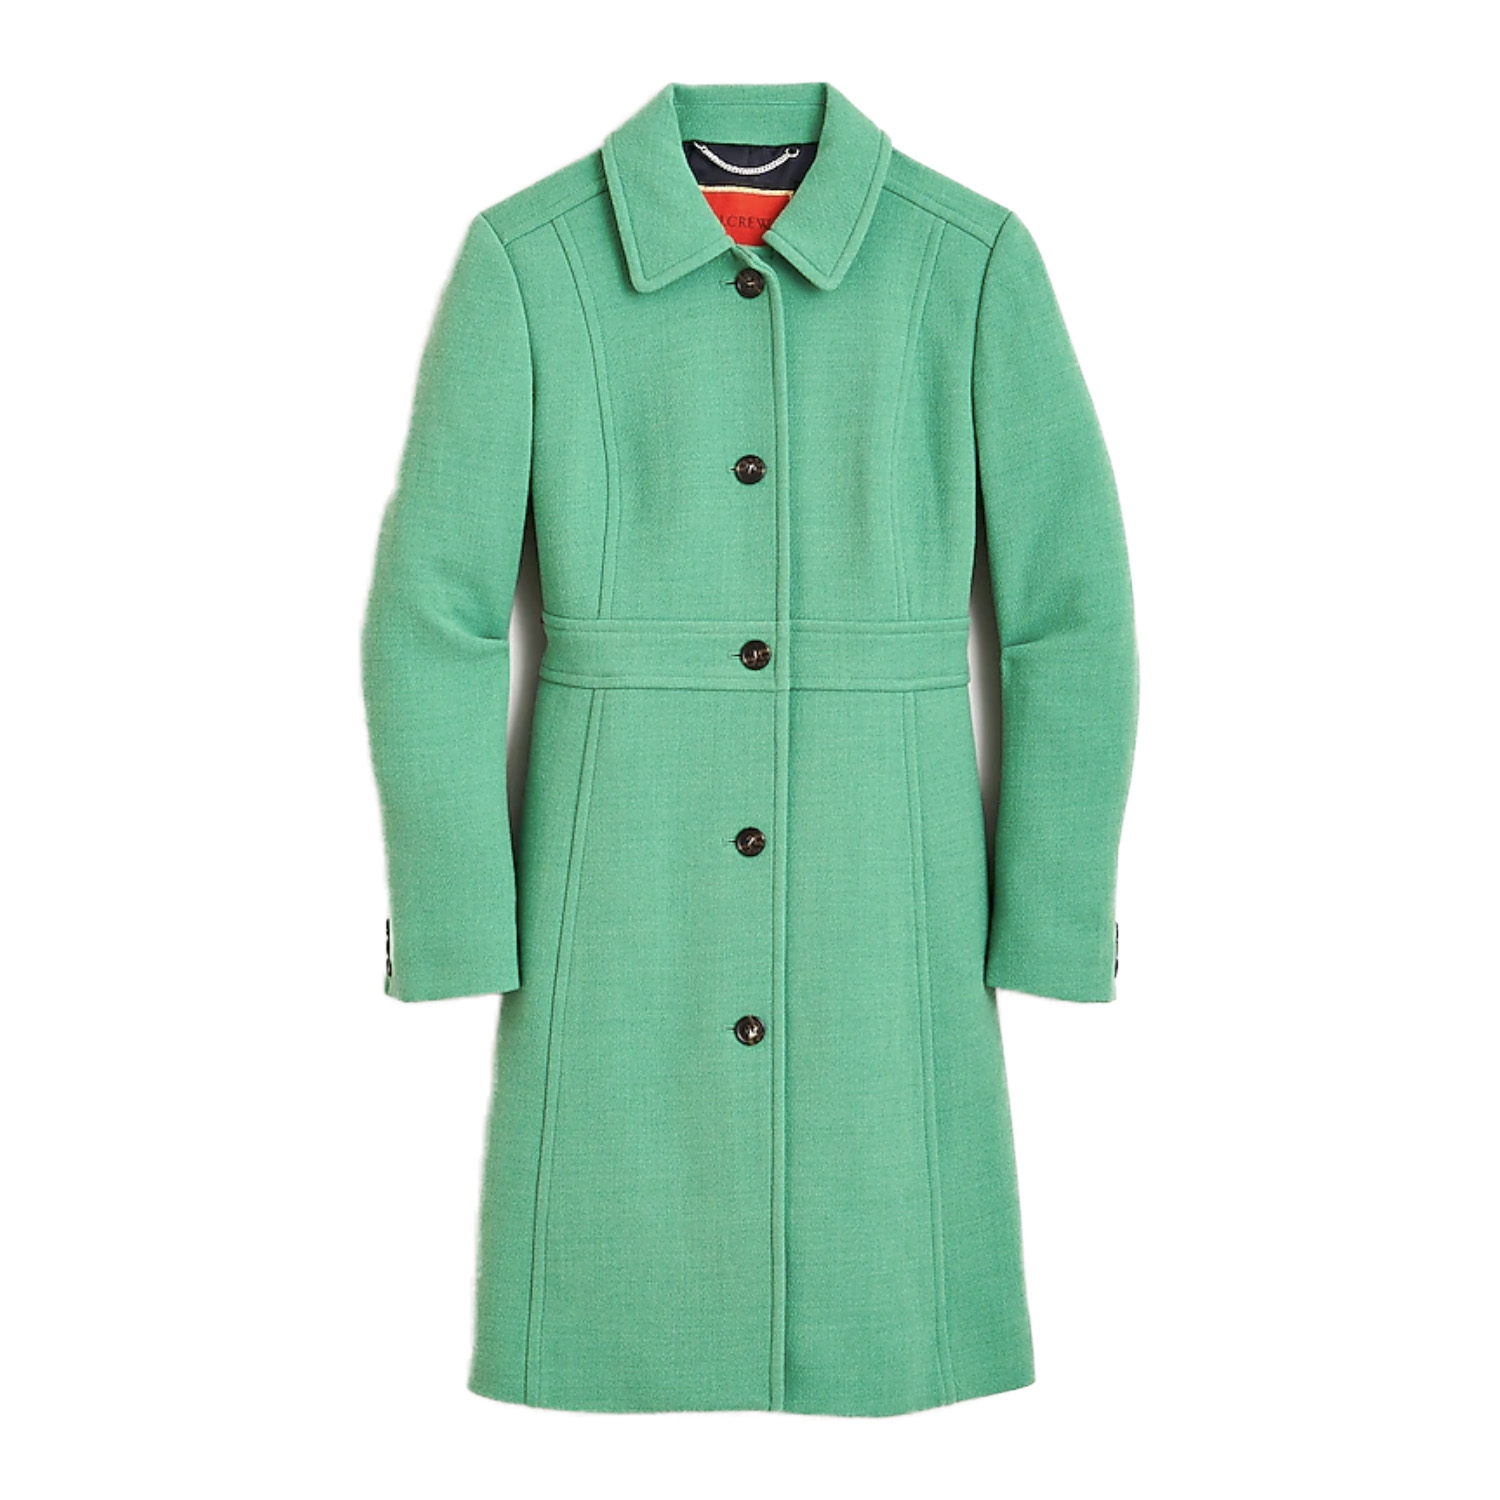 J.Crew Green Wool Coat